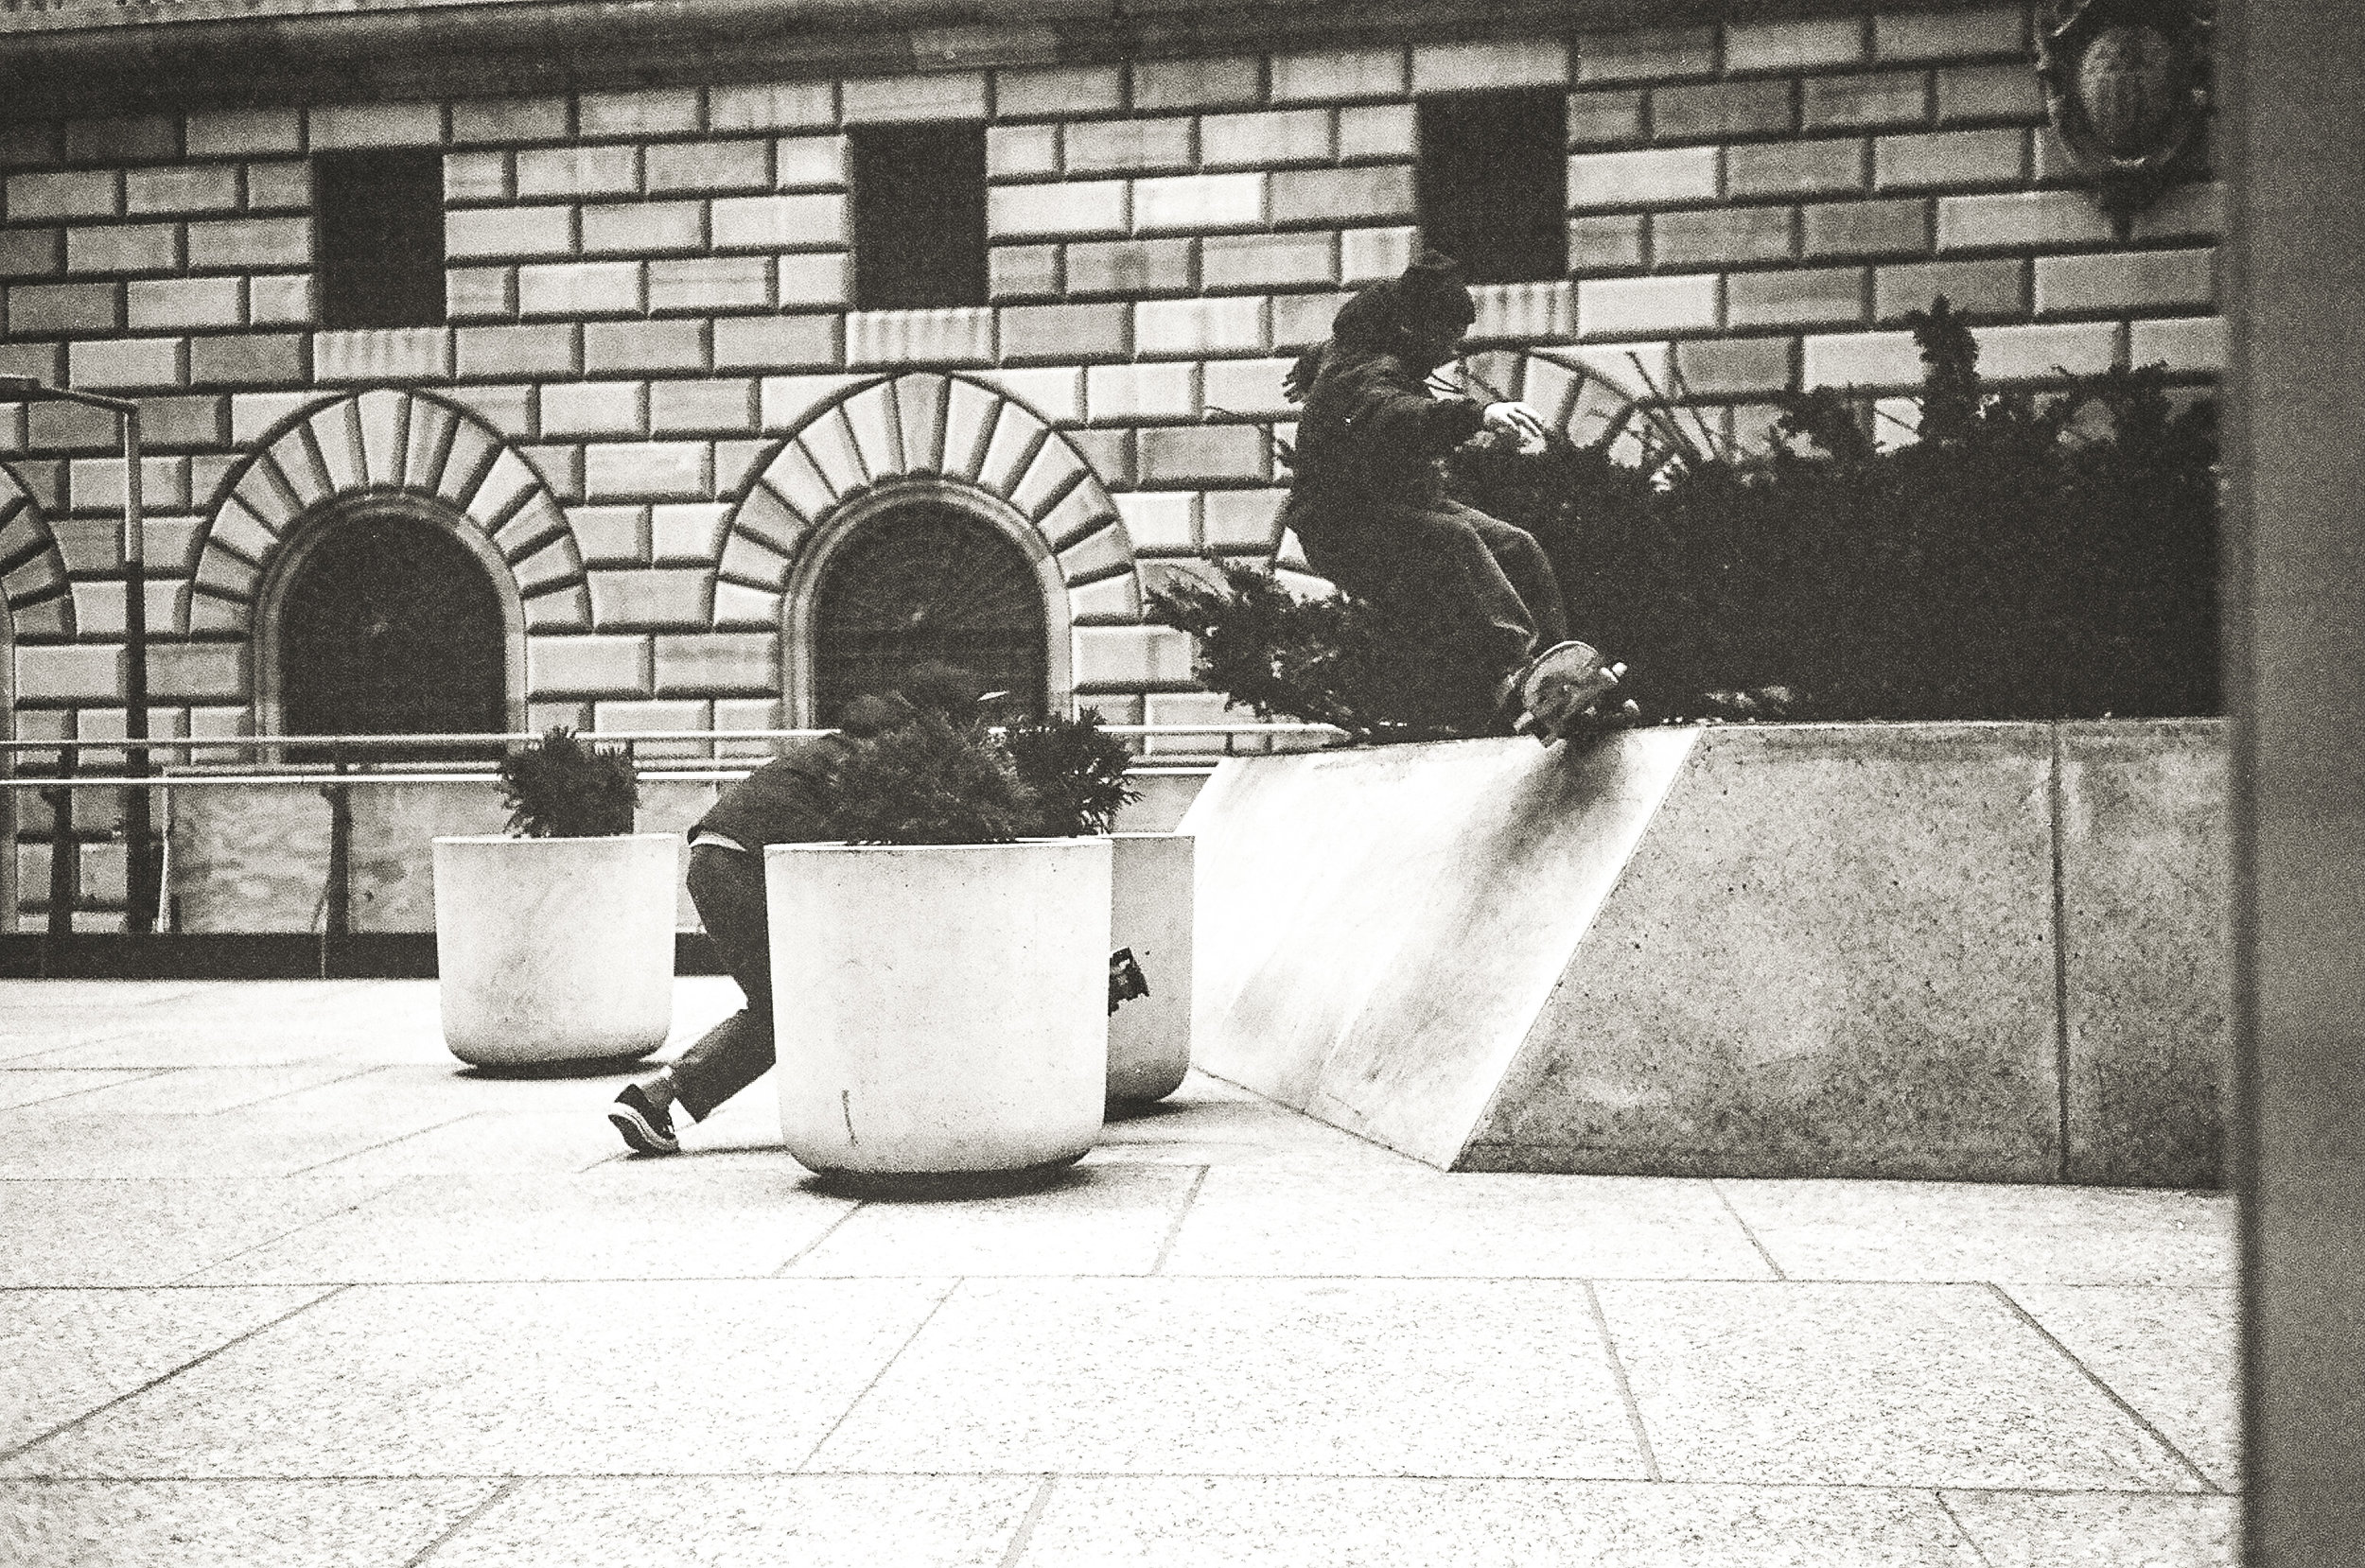 Frontside 5-0 at Chase Bank, lower Manhattan. Photo Pat Stiener